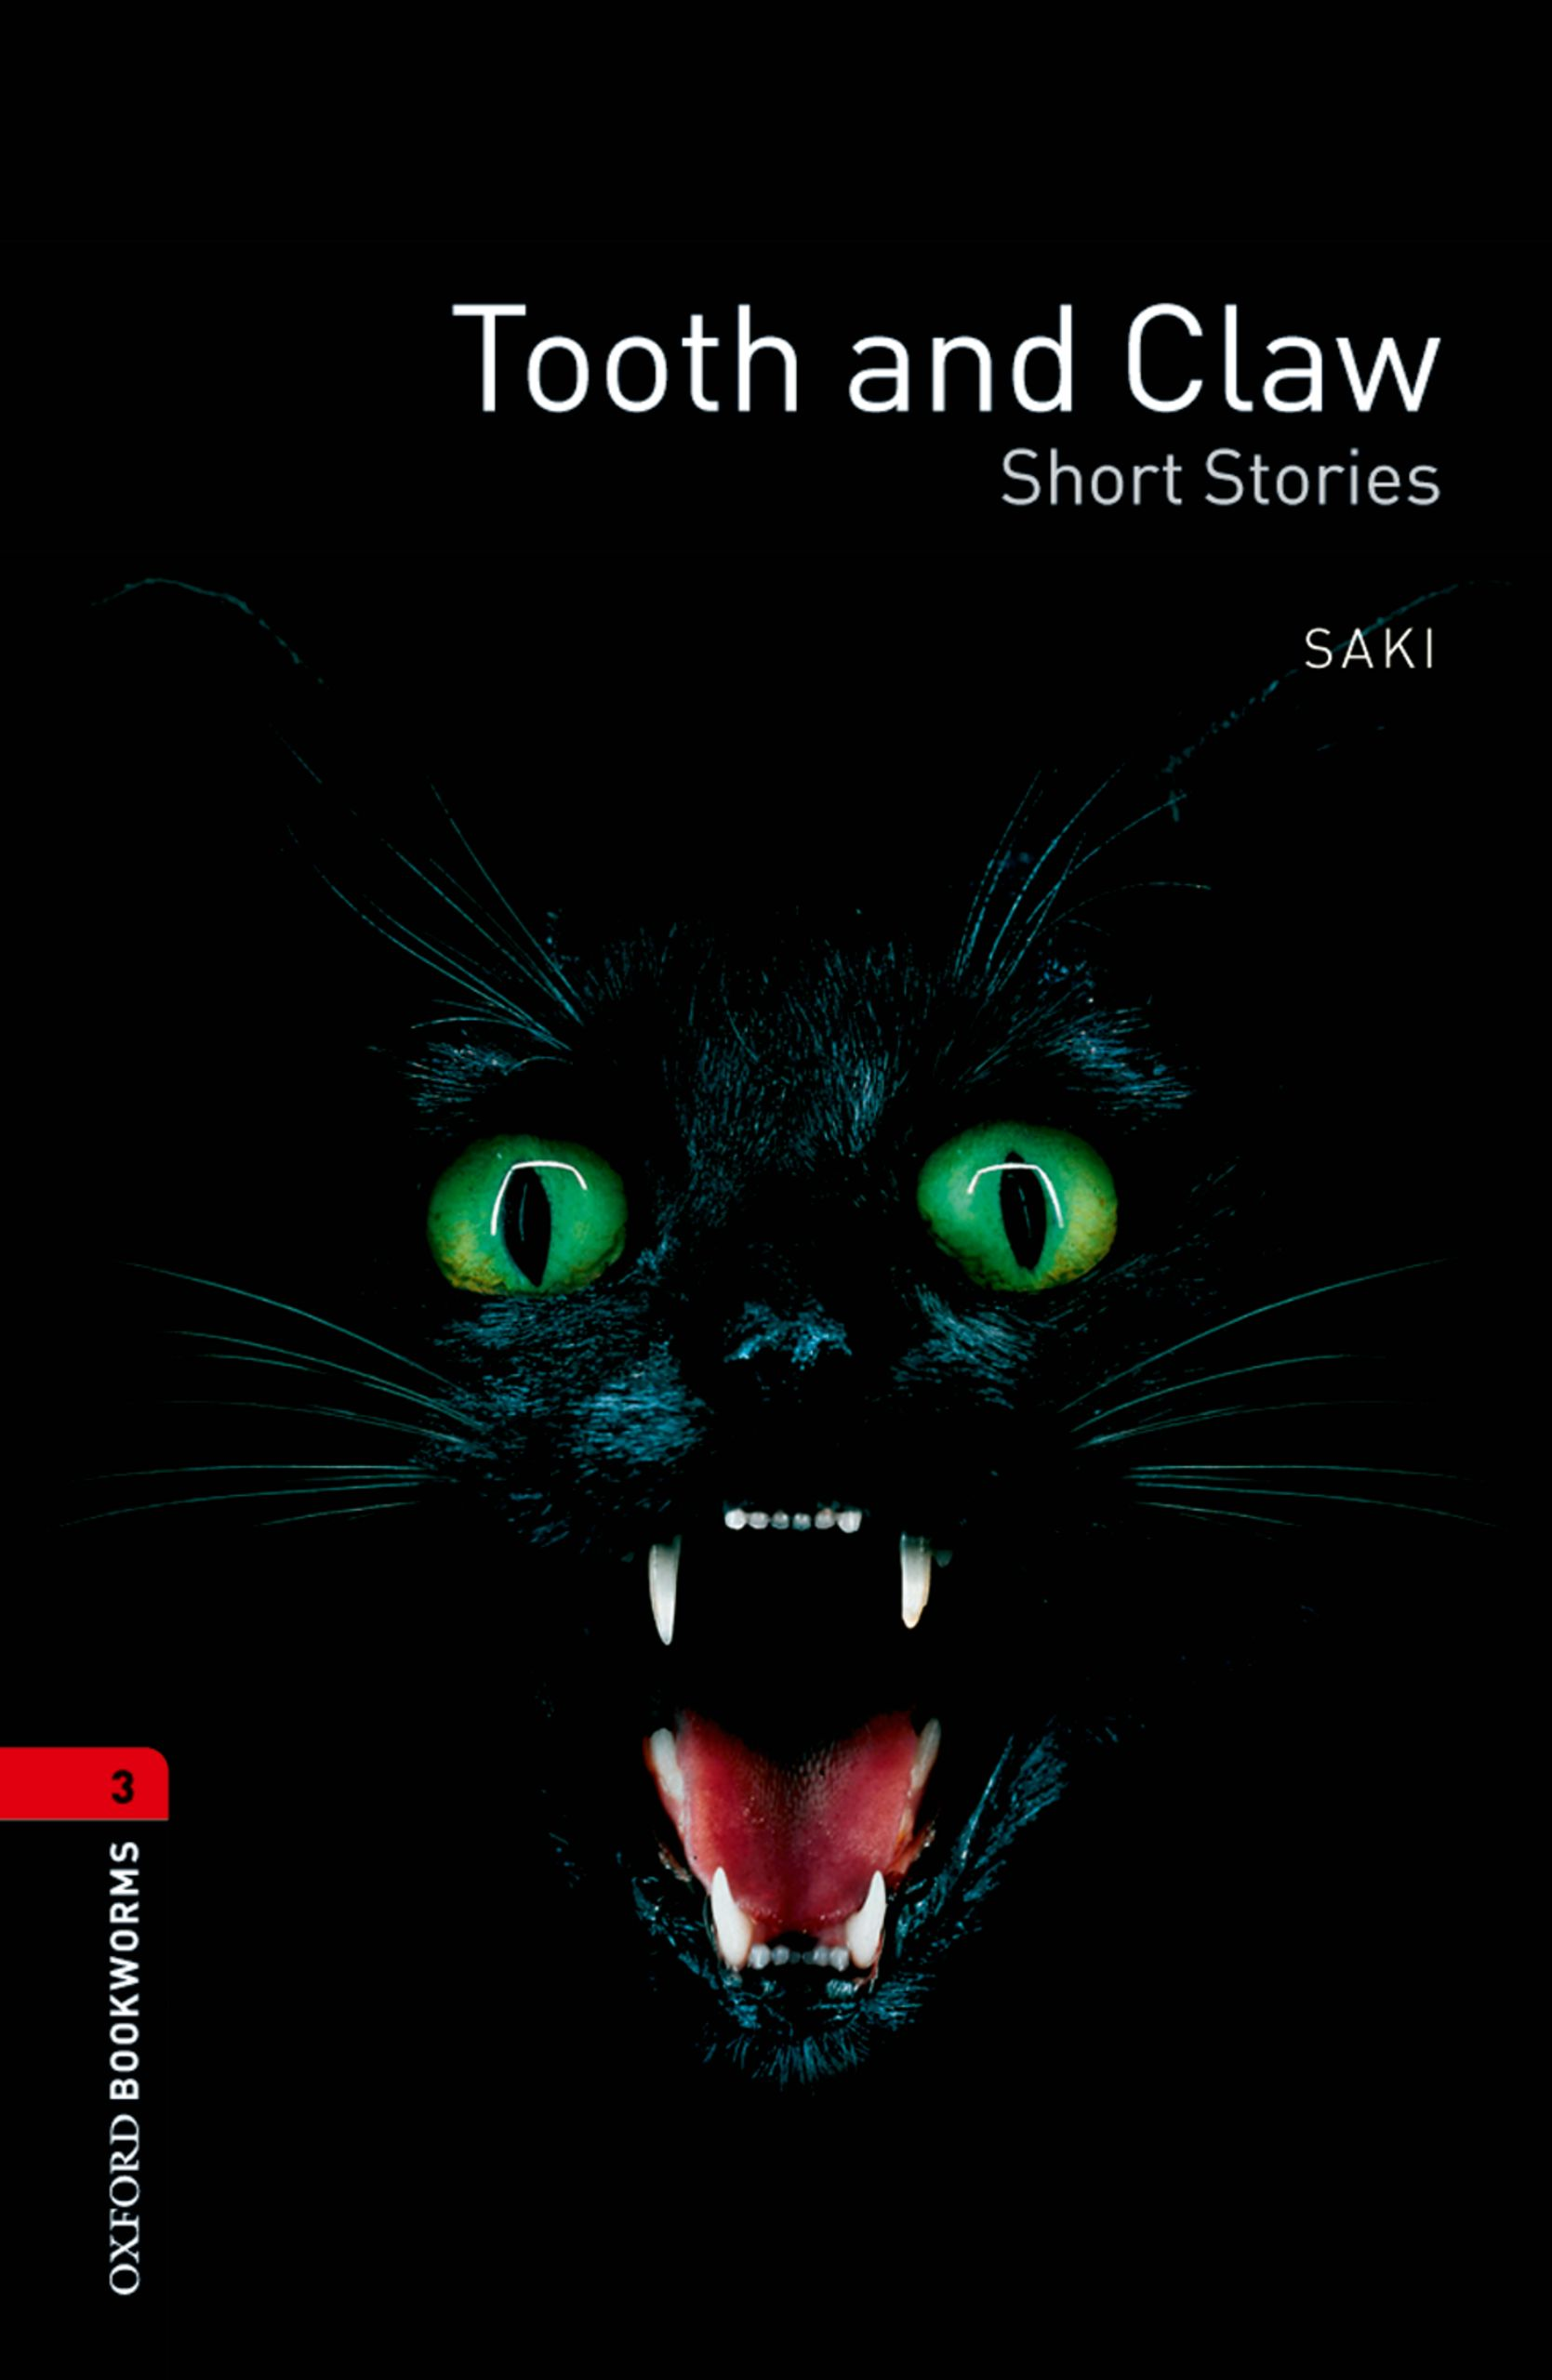 Saki Tooth and Claw – Short Stories animal stories for 6 year olds